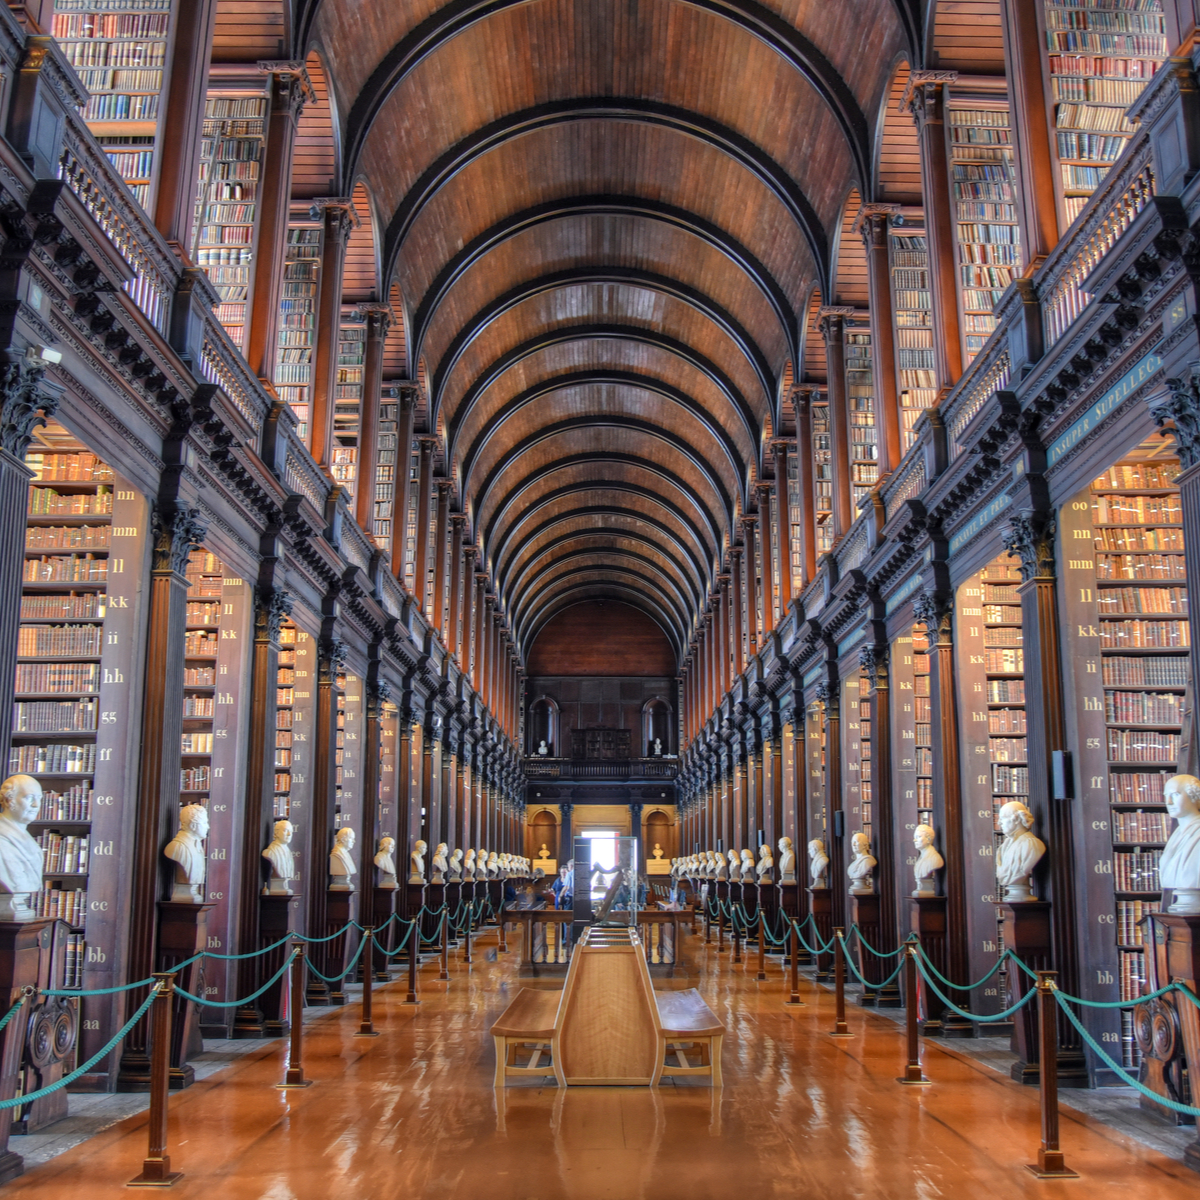 The Long Room in Trinity College's Old Library, Dublin, Ireland.